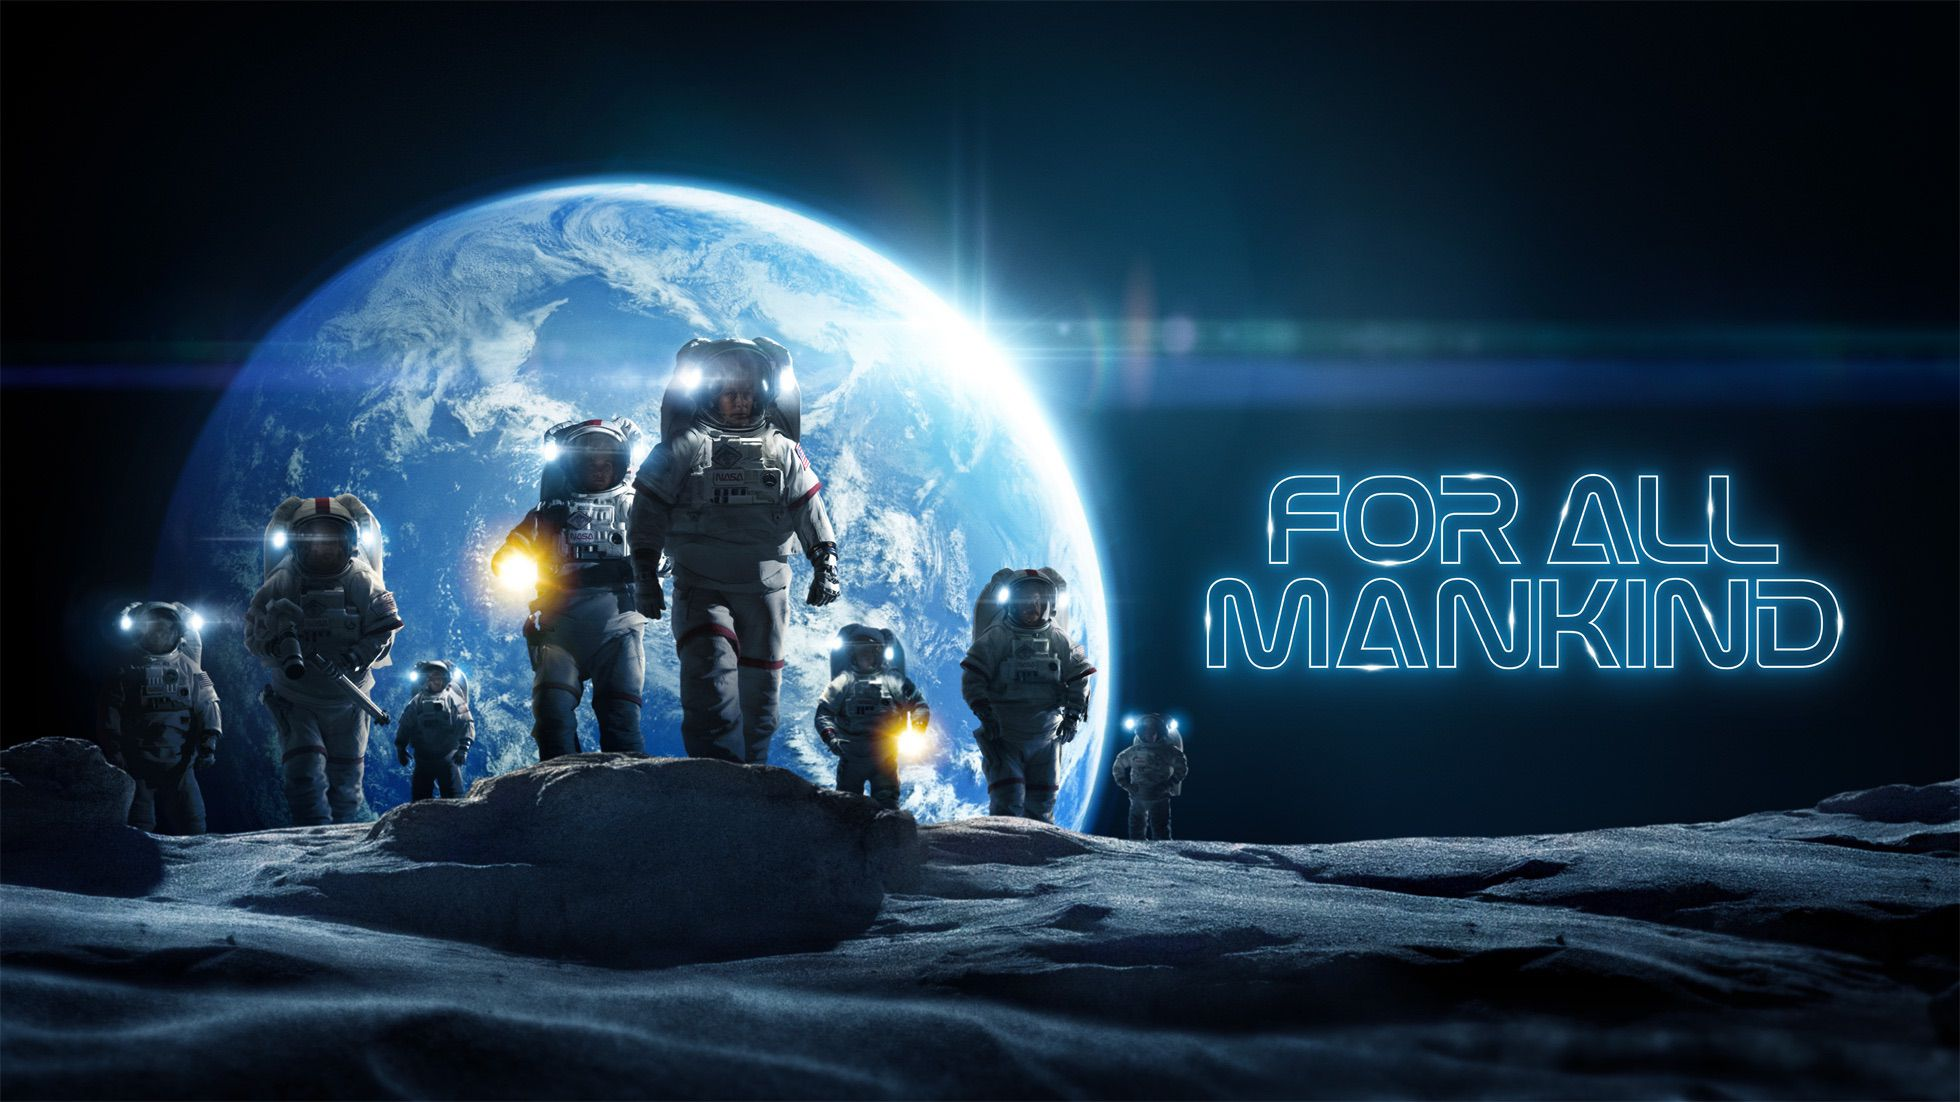 Apple Shares Trailer for Second Season of 'For All Mankind'